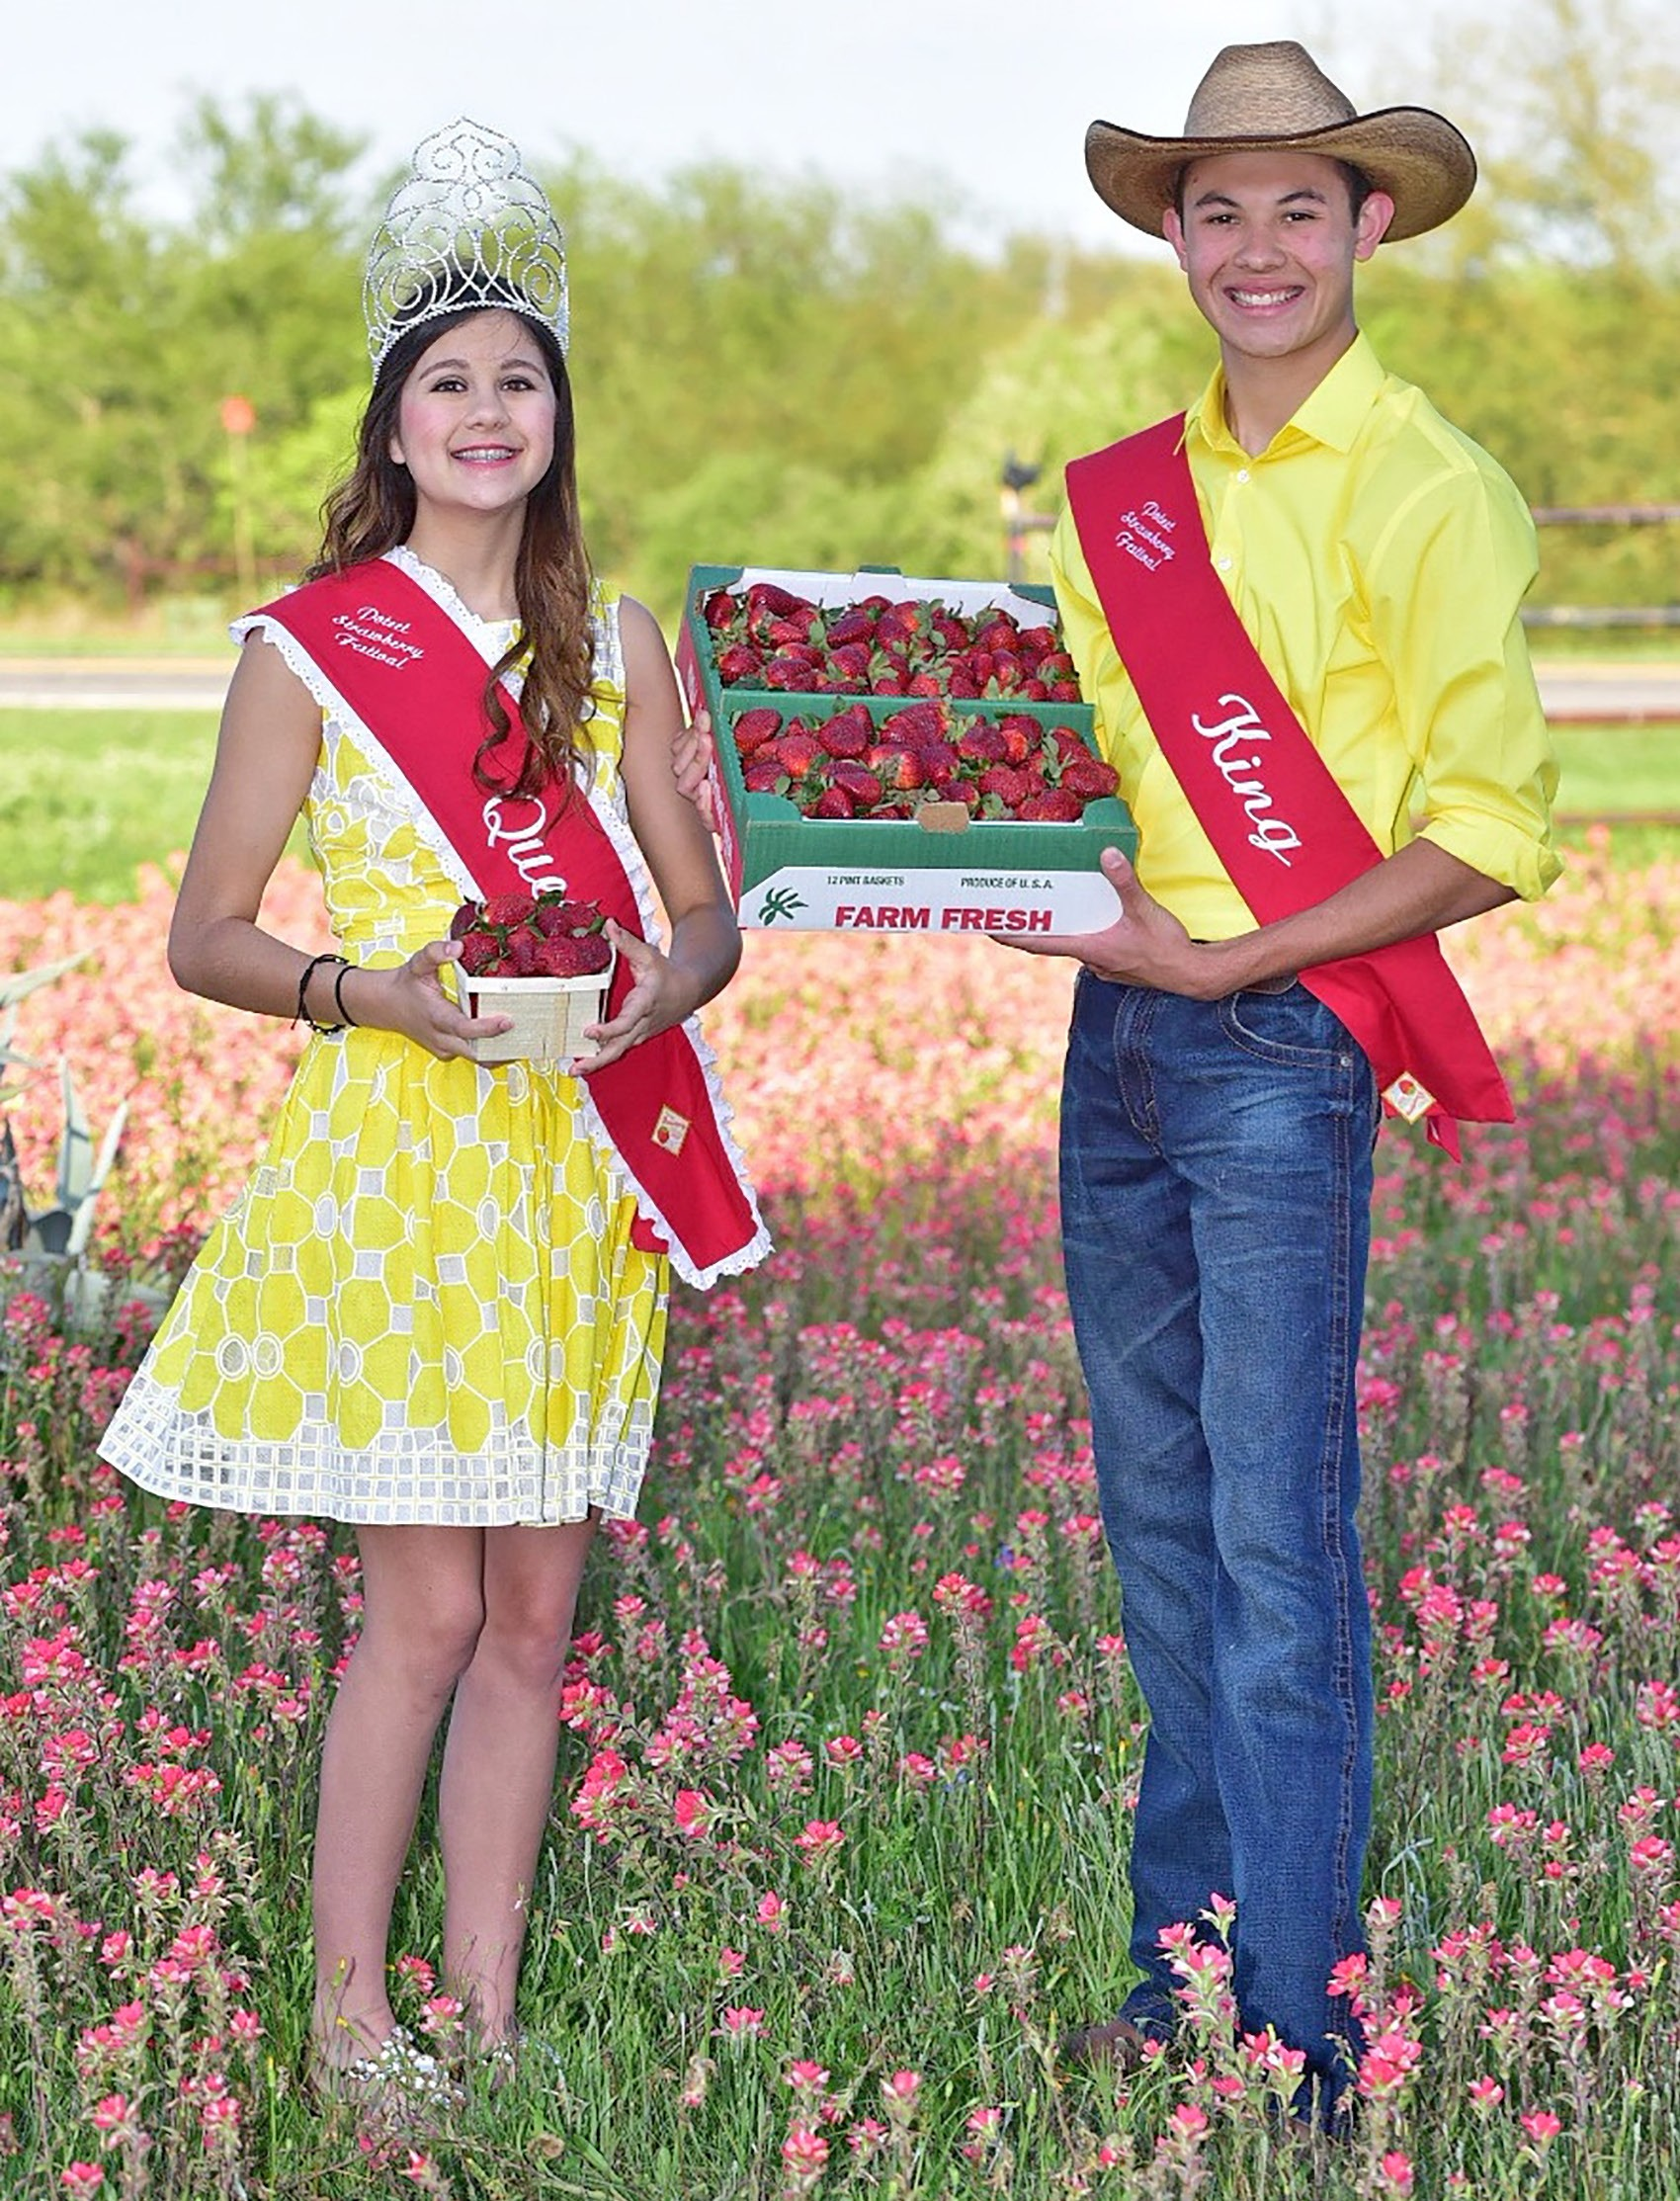 Inviting you to the 69th annual Poteet Strawberry Festival are Queen Isabella Wiederhold and King Donovan Roanin Garcia II. The weekend will feature three days of fun for the entire family. The event is slated for April 8, 9 and 10 and will feature a wide array of entertainment for the entire family. This year's schedule of headliners includes: Friday- Eddie Money, David Lee Garza and Raymond Orta; Saturday- Tracy Byrd, Pesado and Kevin Fowler; Sunday- Josh Wilson, Jason Gray, JJ Heller, Rick Treviño, Aaron Watson and La Maquinaria Norteño.